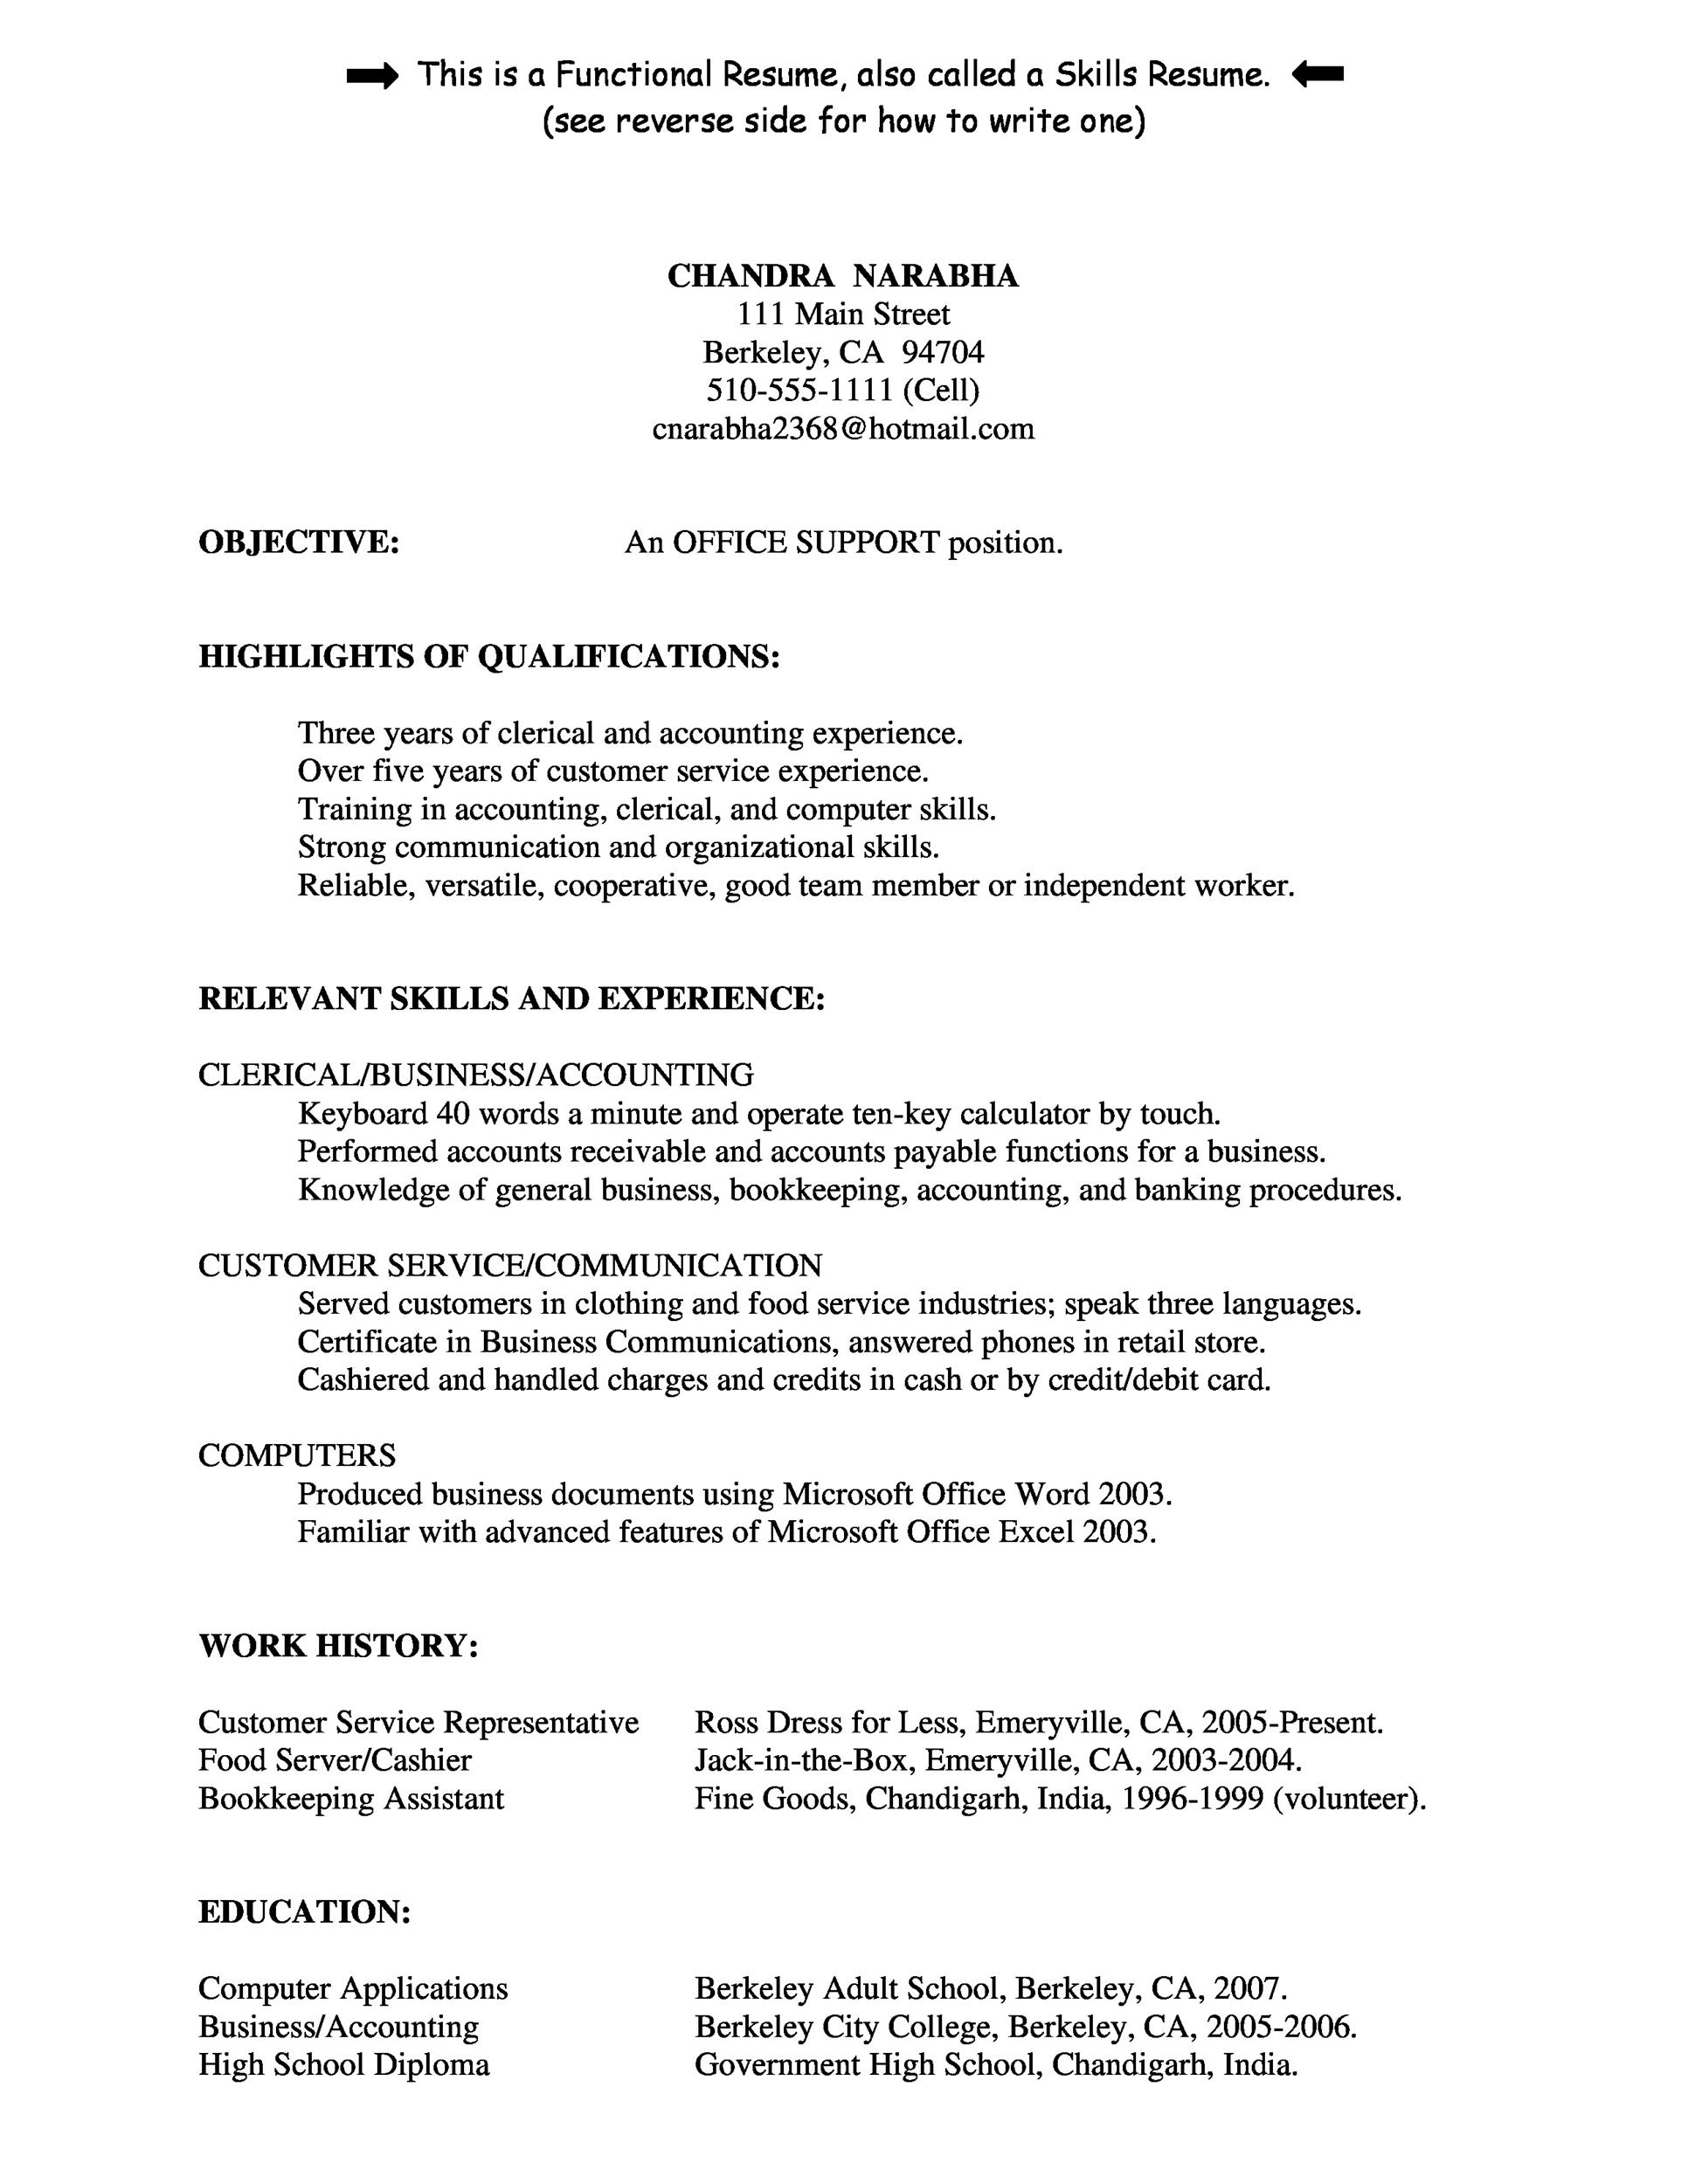 30+ Customer Service Resume Examples - Template Lab - resume microsoft